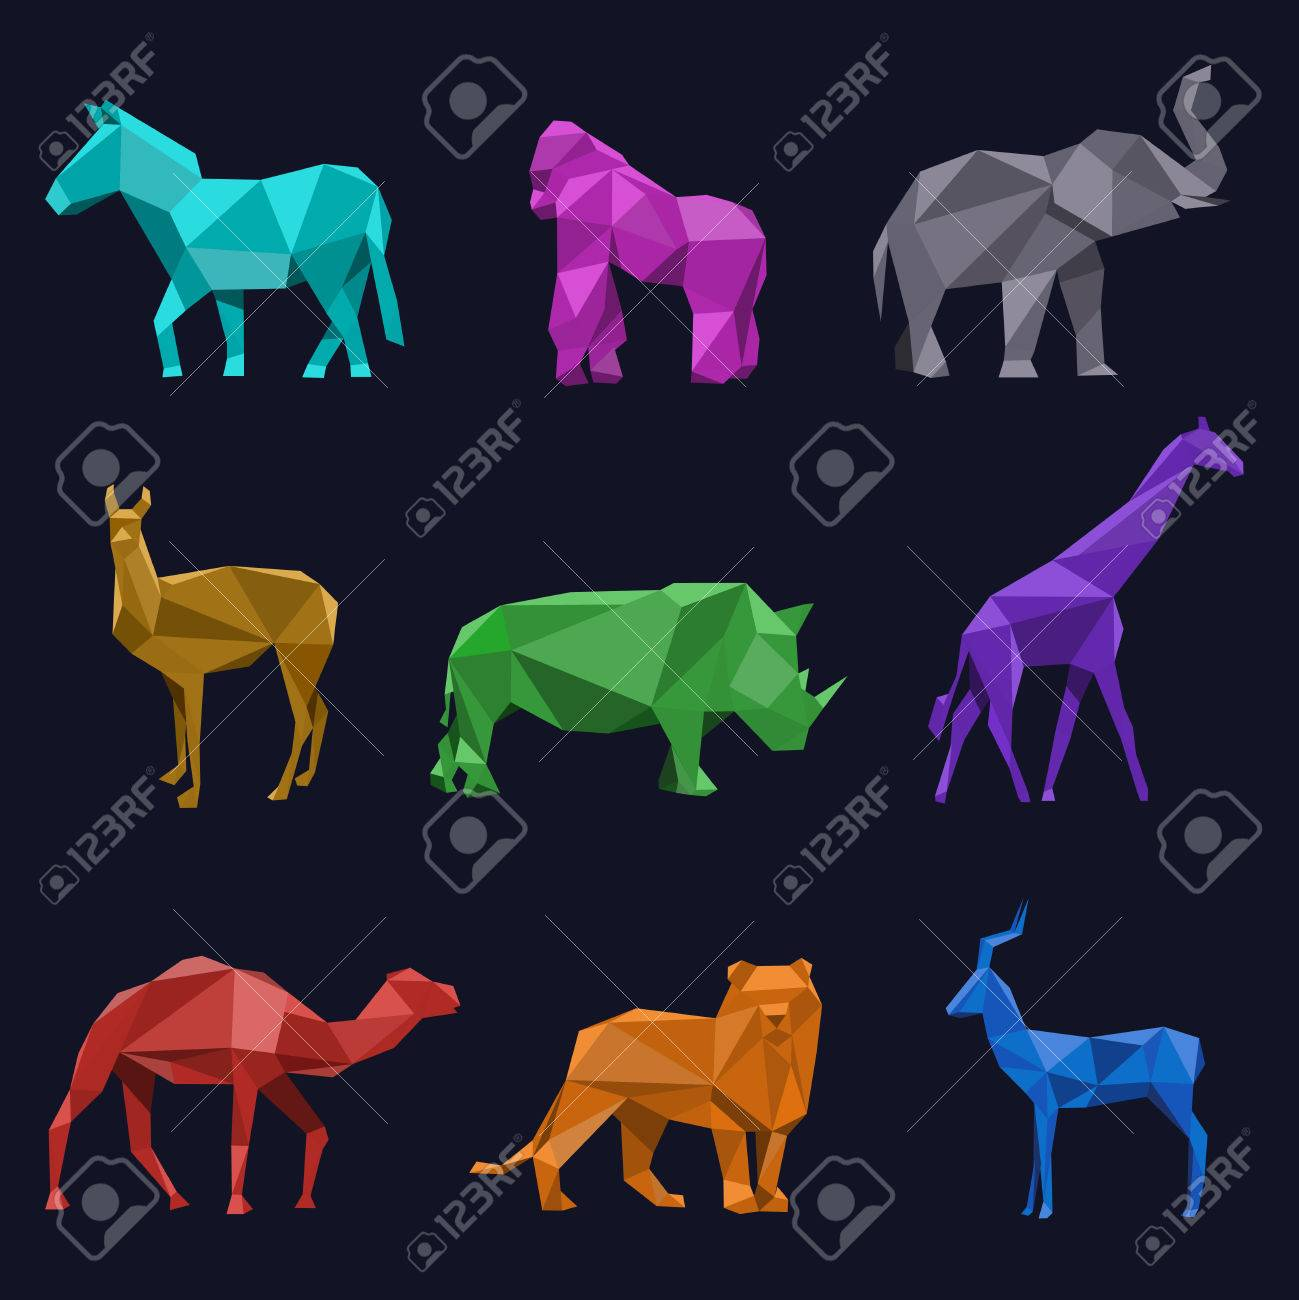 Animals low poly. Roe and lion, rhino camel elephant gorilla and giraffe, vector illustration Stock Vector - 49251456